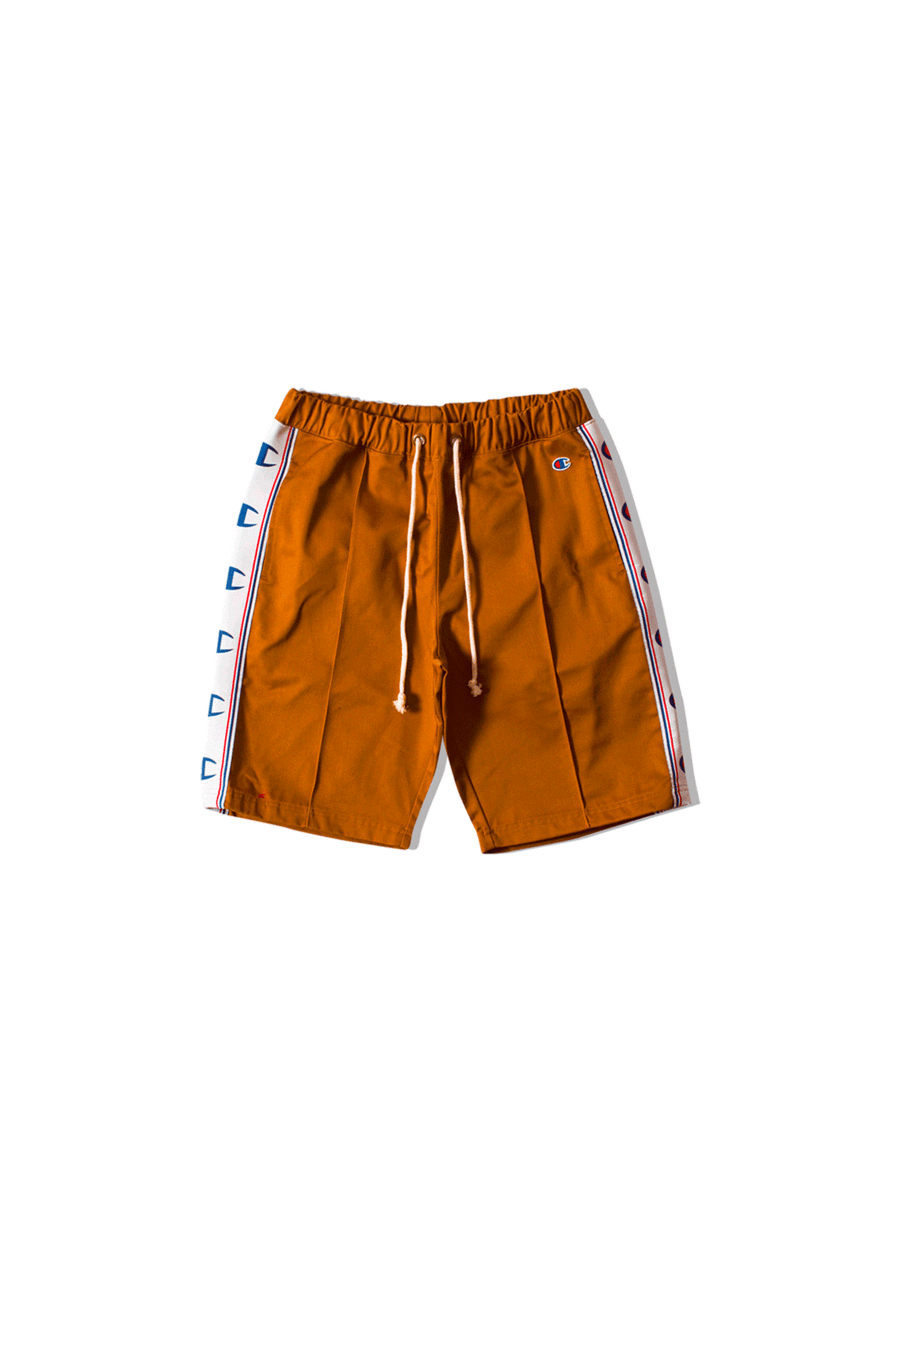 Champion Shorts Bermuda Brown 213075#MS523#C0003#XXS - One Block Down